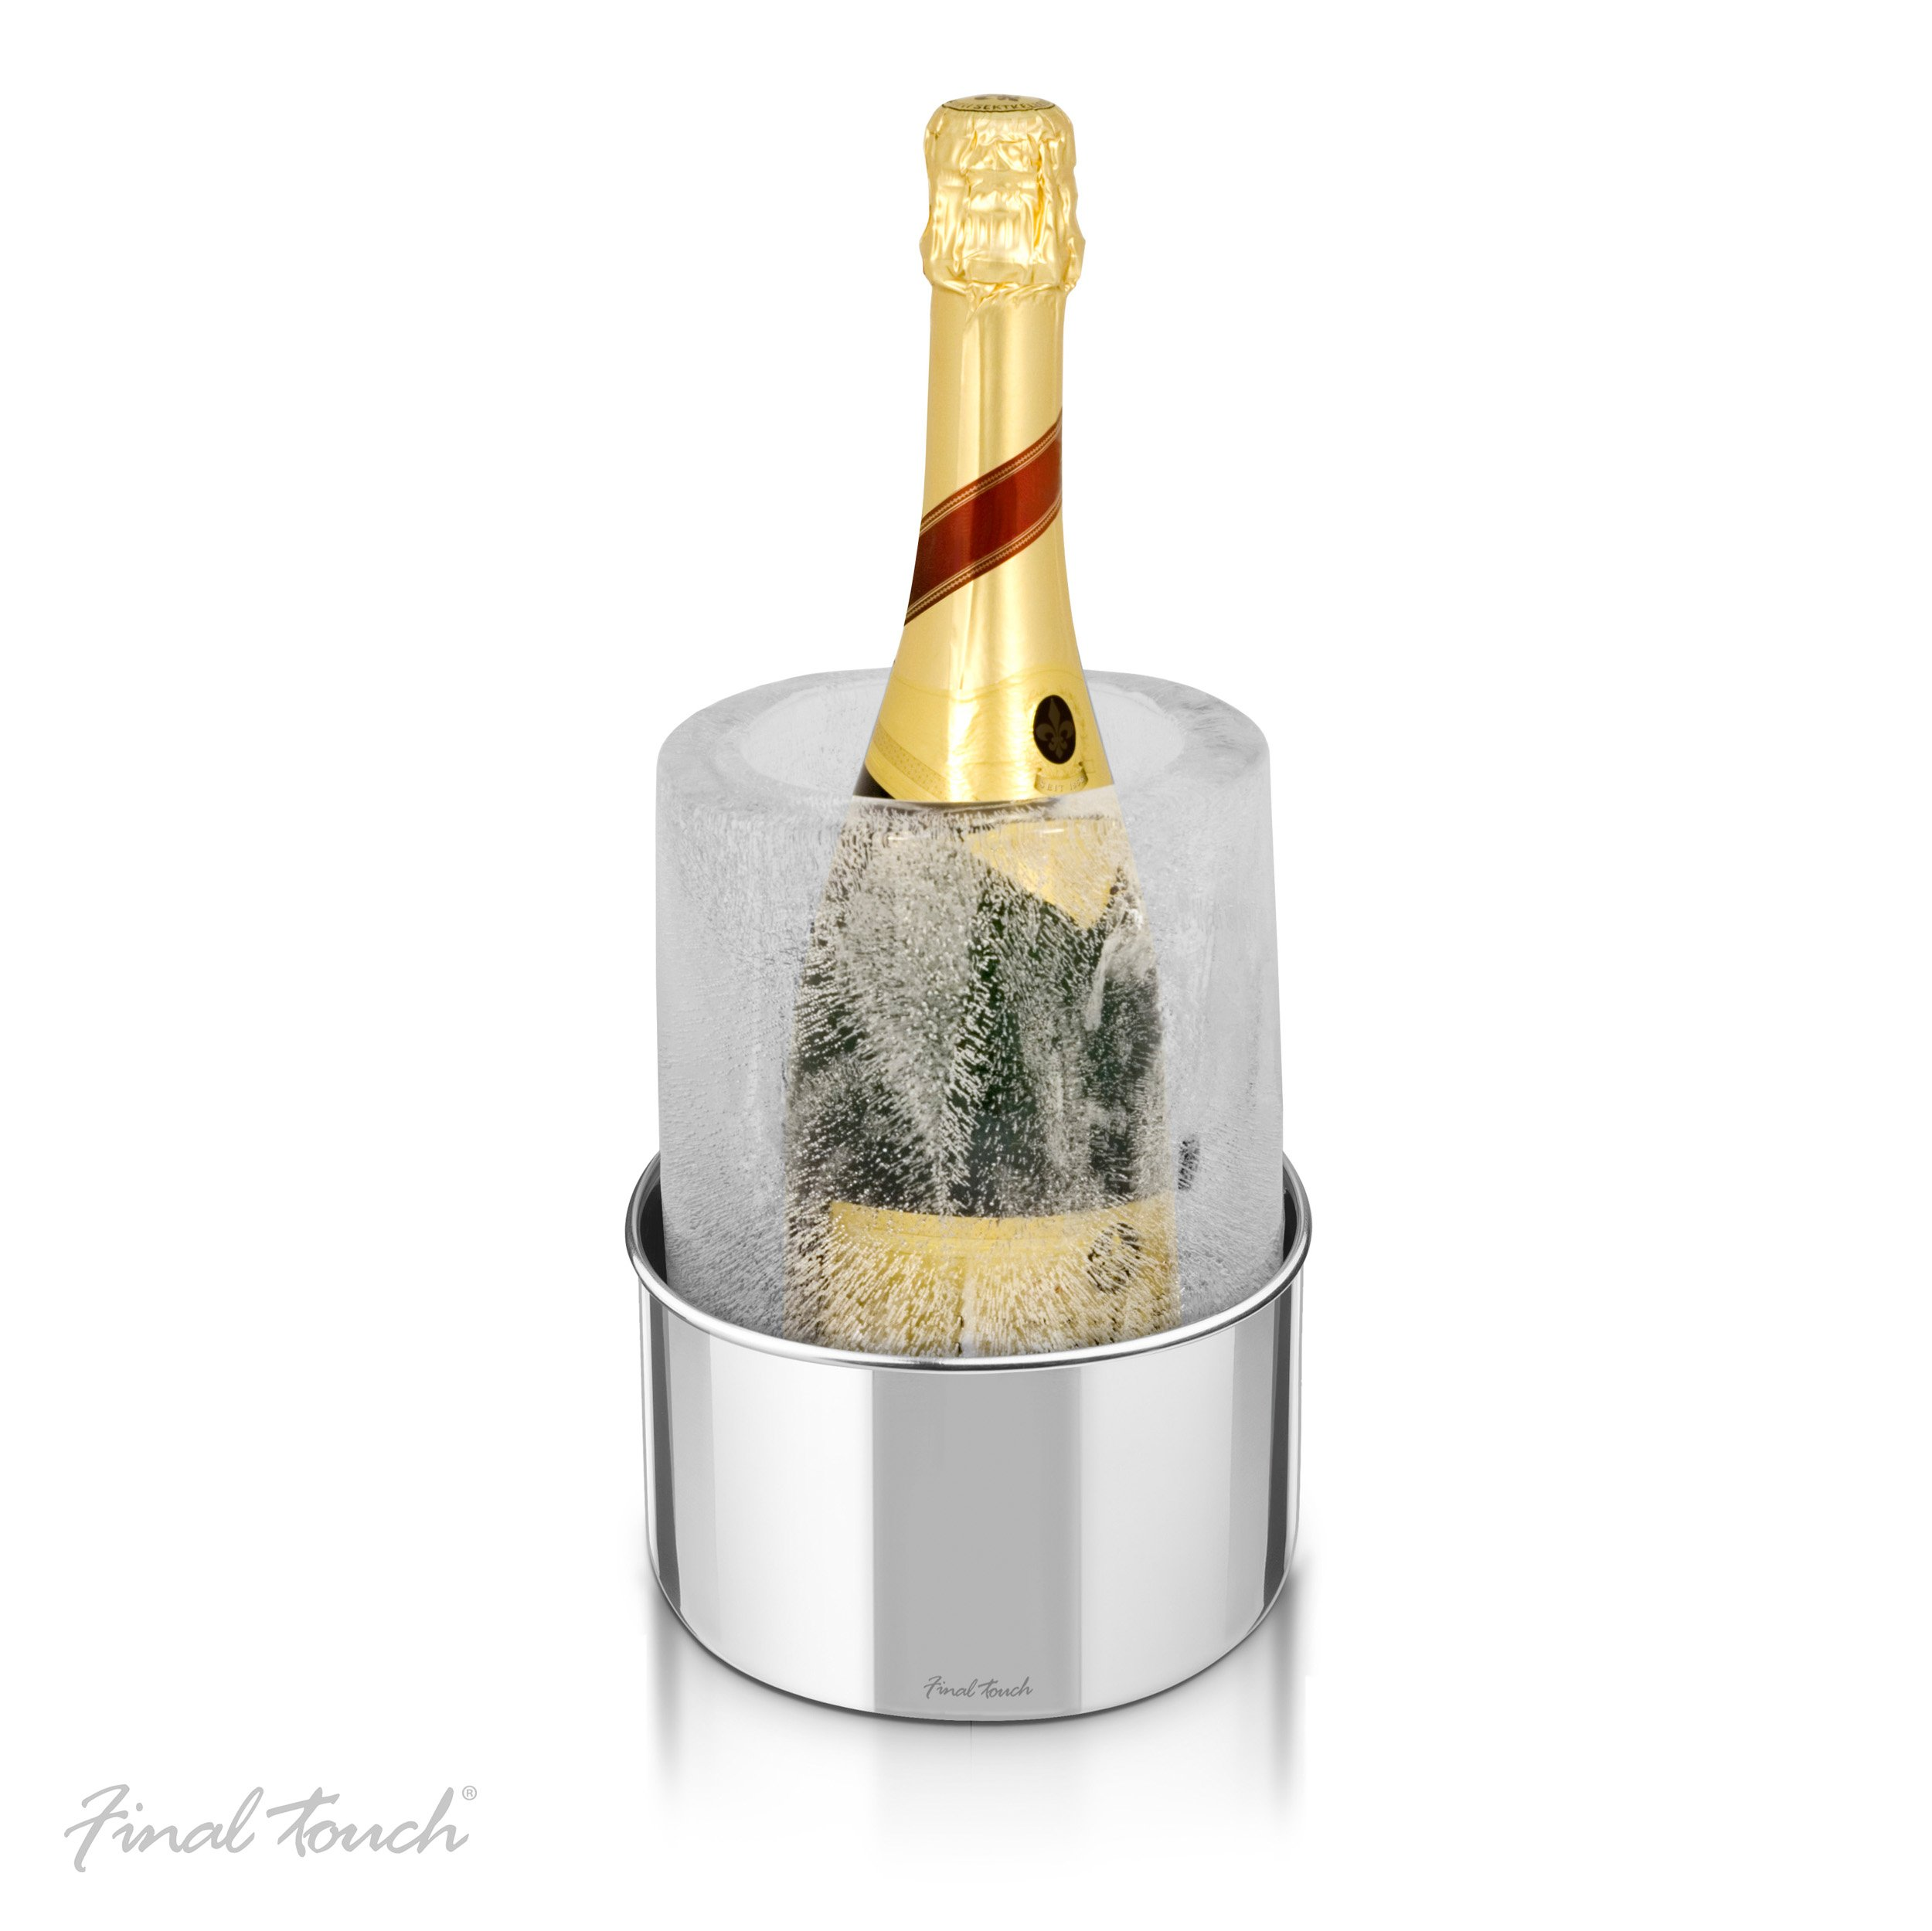 Final Touch Stainless Steel Ice Bottle Chiller